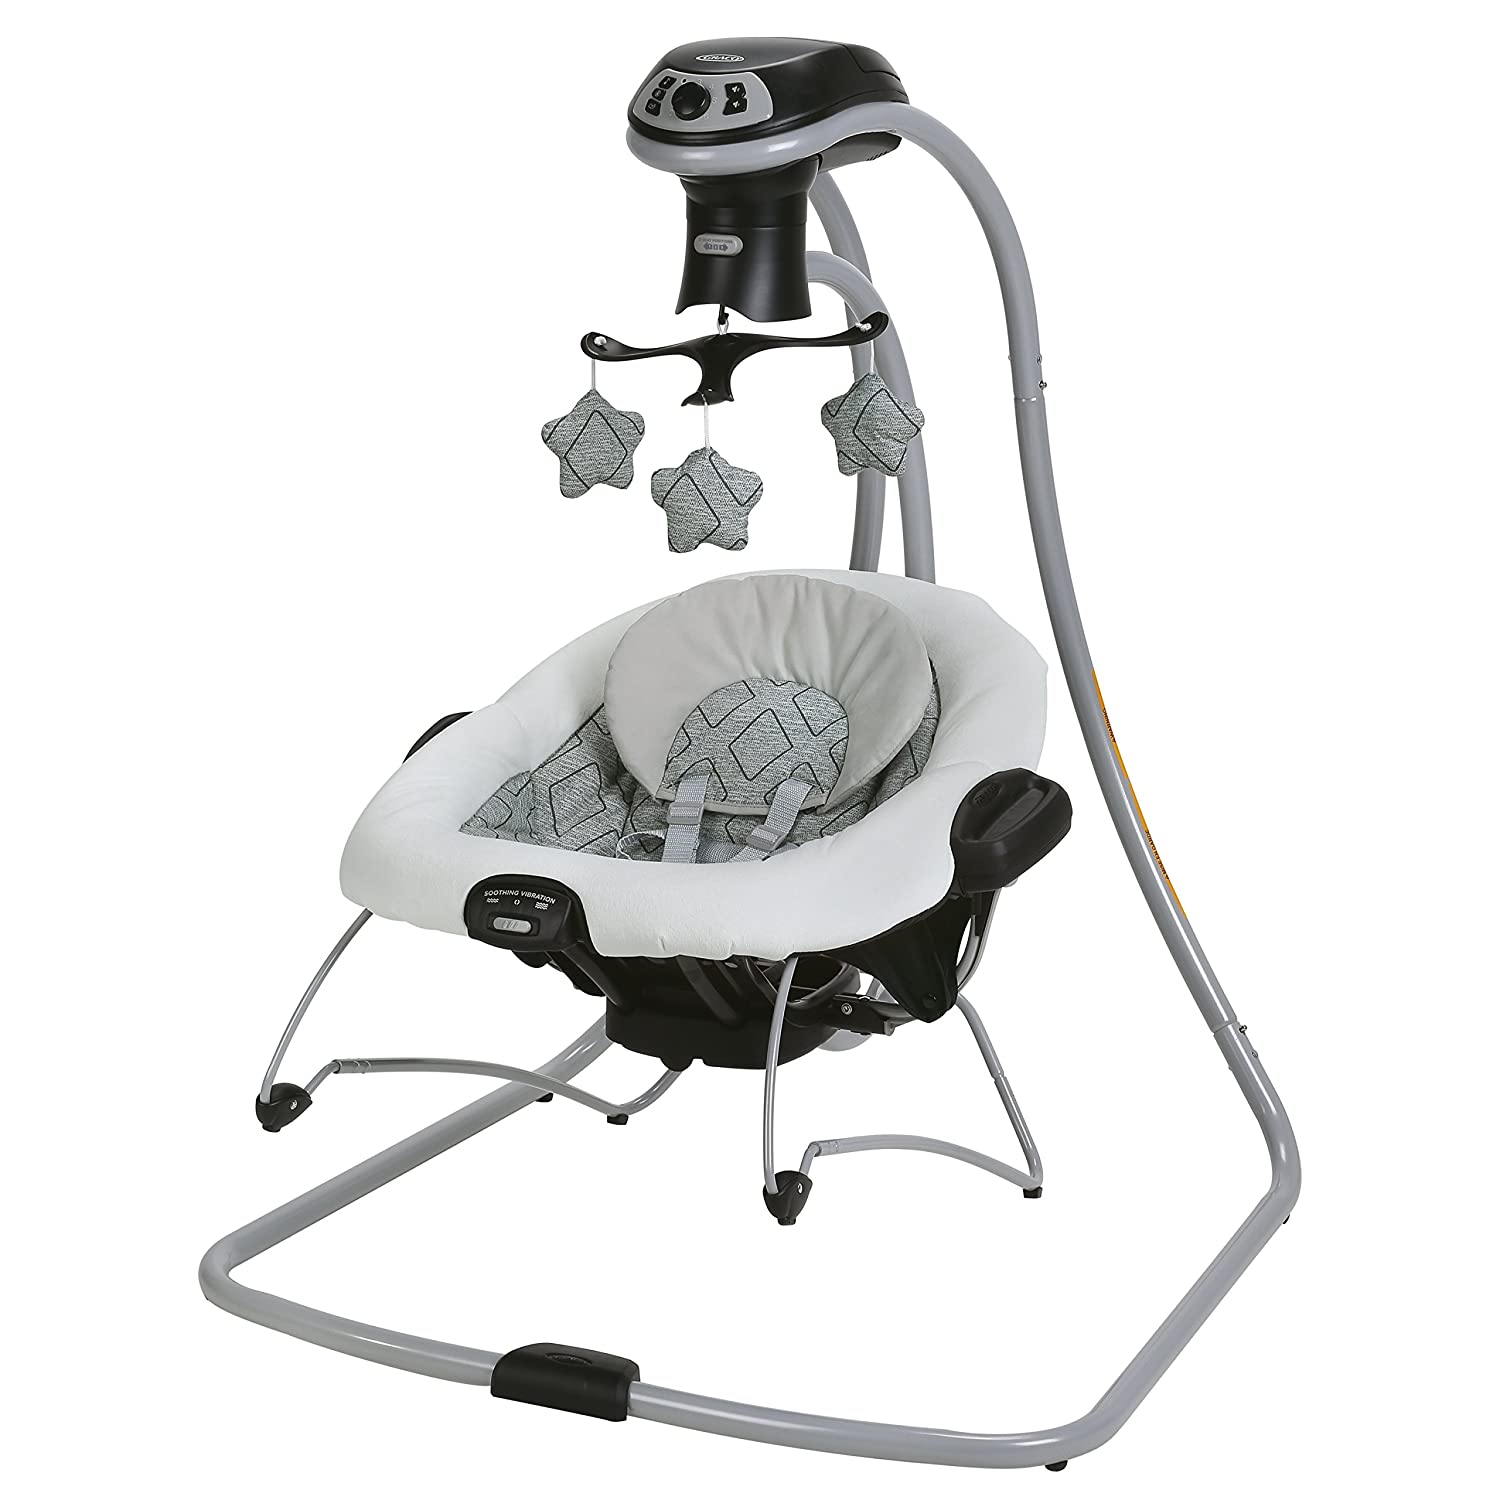 Graco Duetconnect Lx Swing and Portable Bouncer with Multi-Direction, Asher 1901624